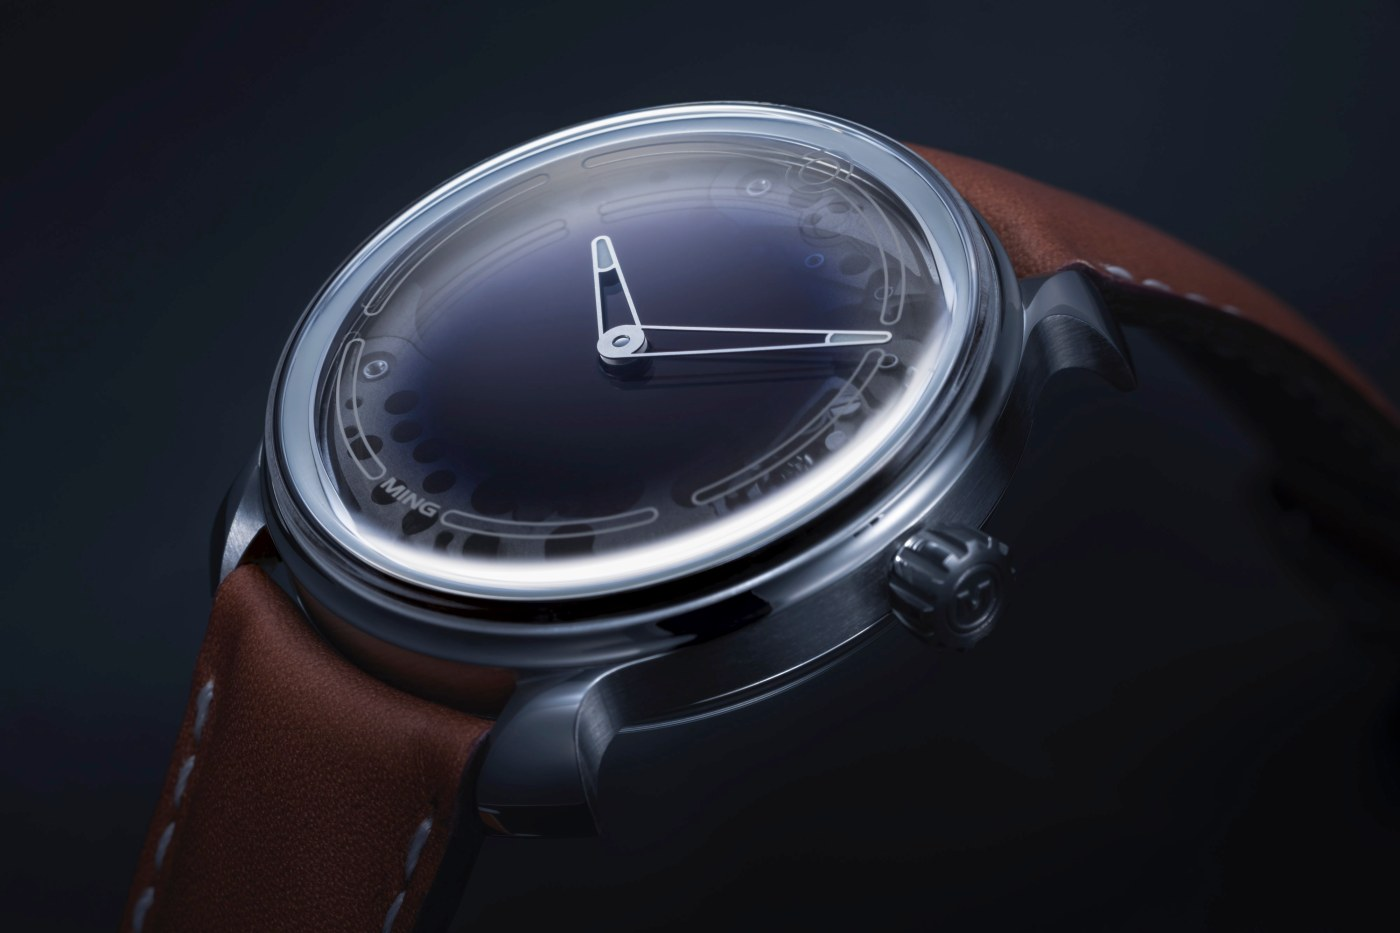 Ming 19.01 wristwatch